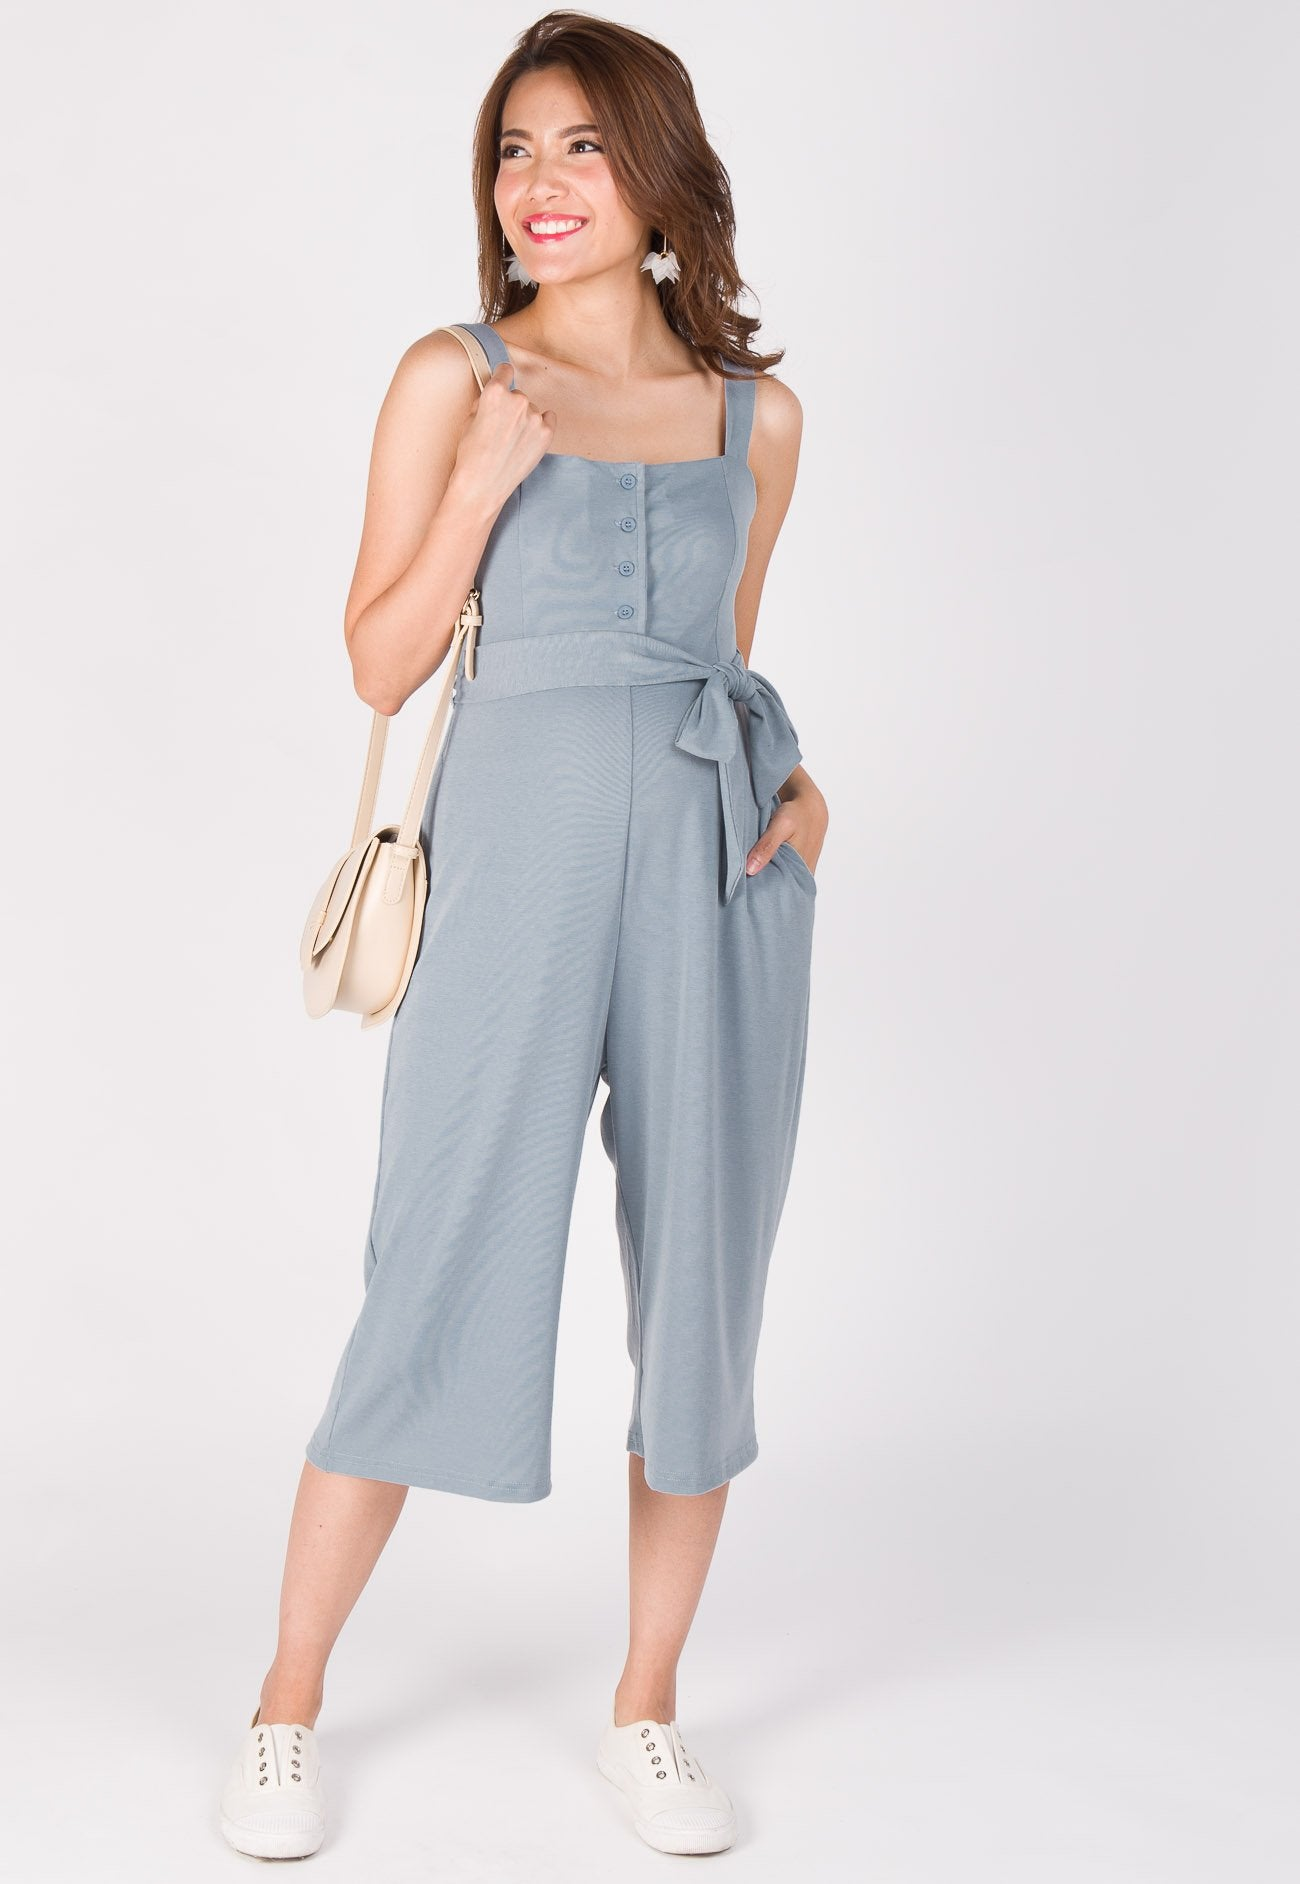 Casual Day Nursing Jumpsuit in Blue  by Jump Eat Cry - Maternity and nursing wear